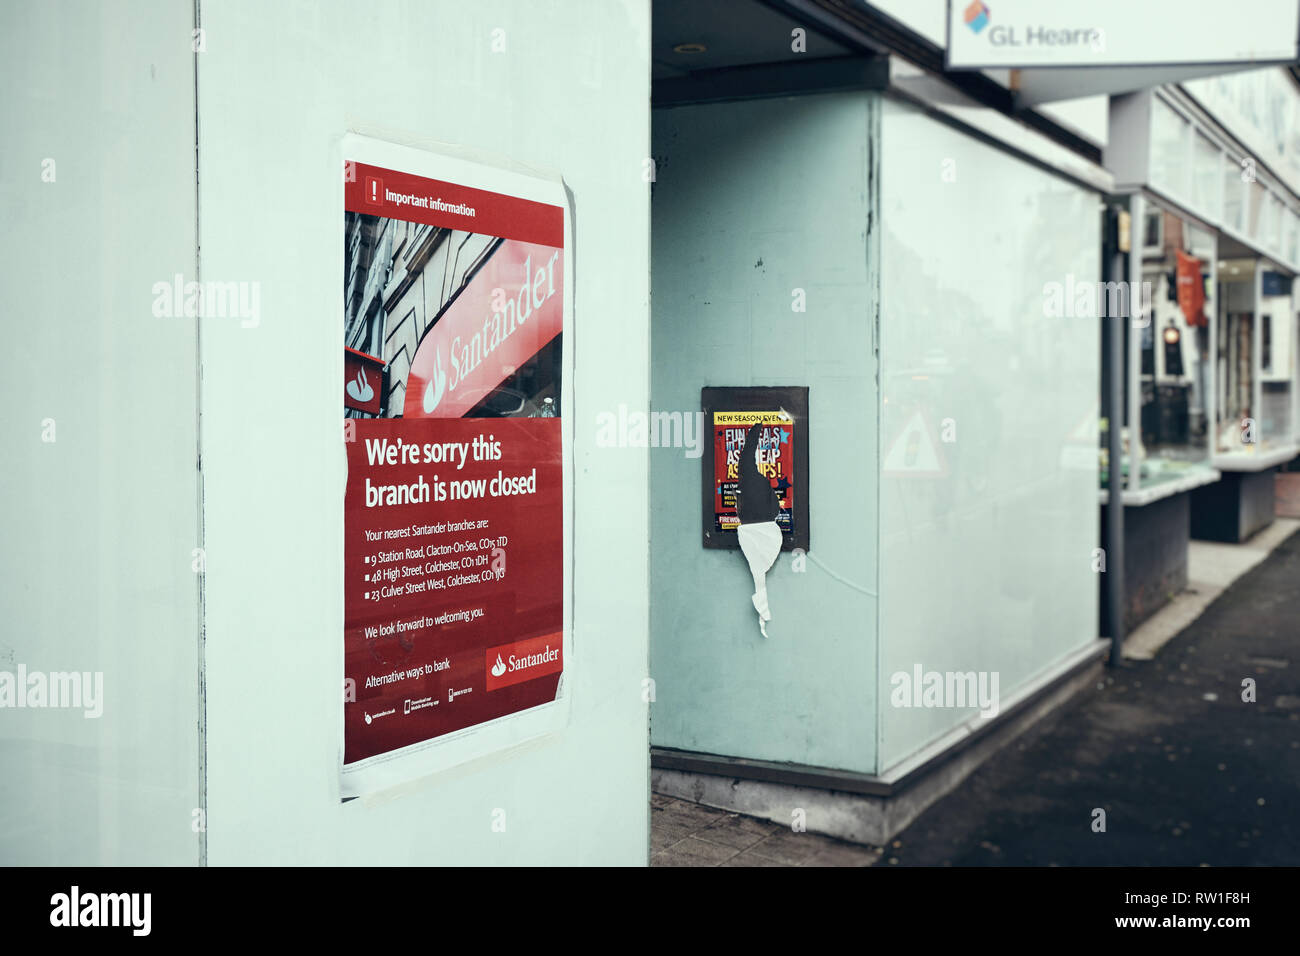 Harwich & Dovercourt, Essex, ENGLAND - March 3, 2019: A wide side view of a poster informing of the branch closure of Santander in Harwich High Street - Stock Image